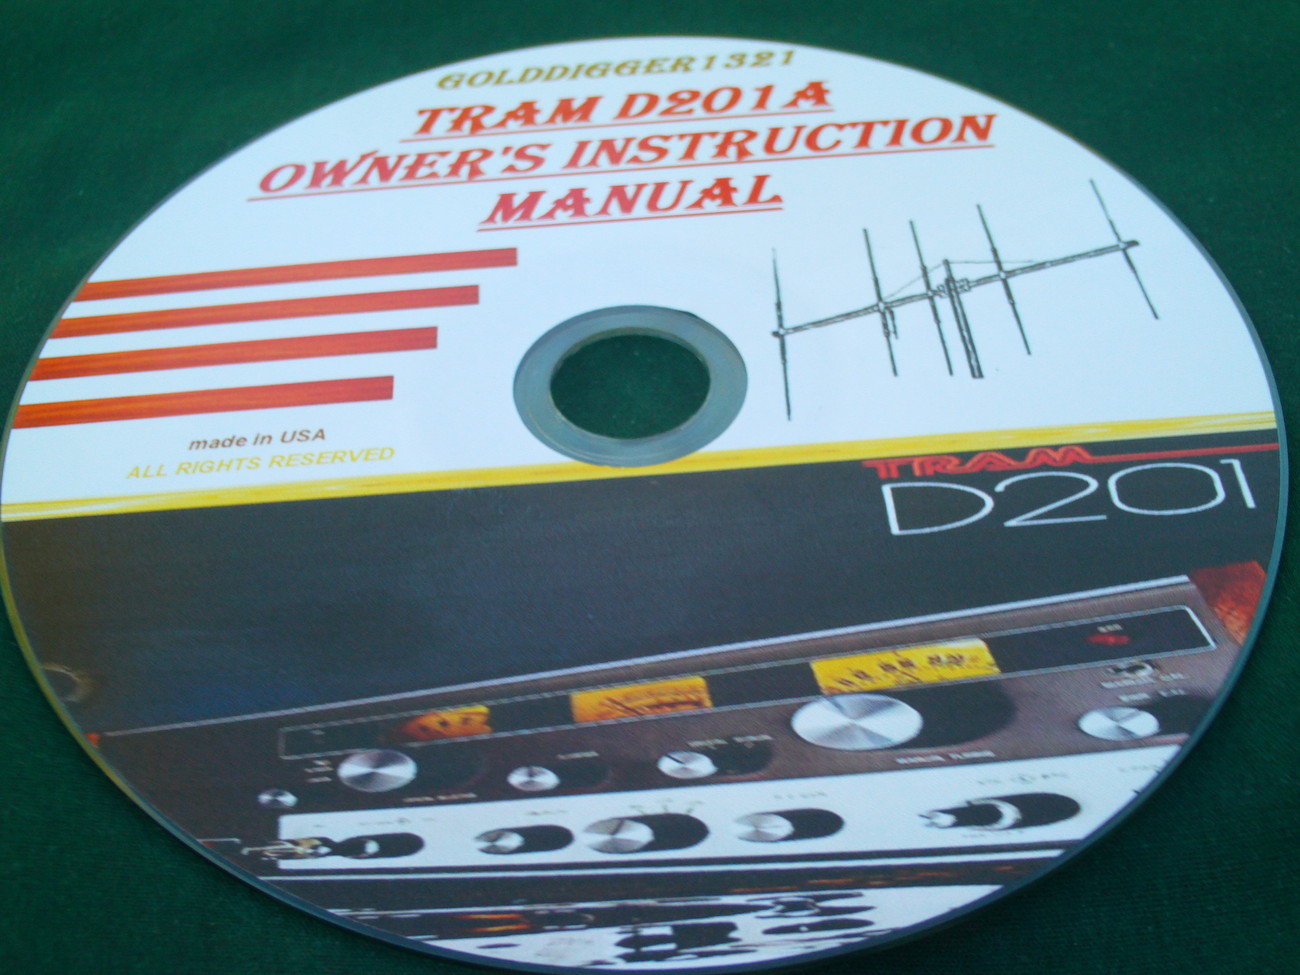 TRAM D201A OWNER'S INSTRUCTION MANUAL ON CD - $10.00